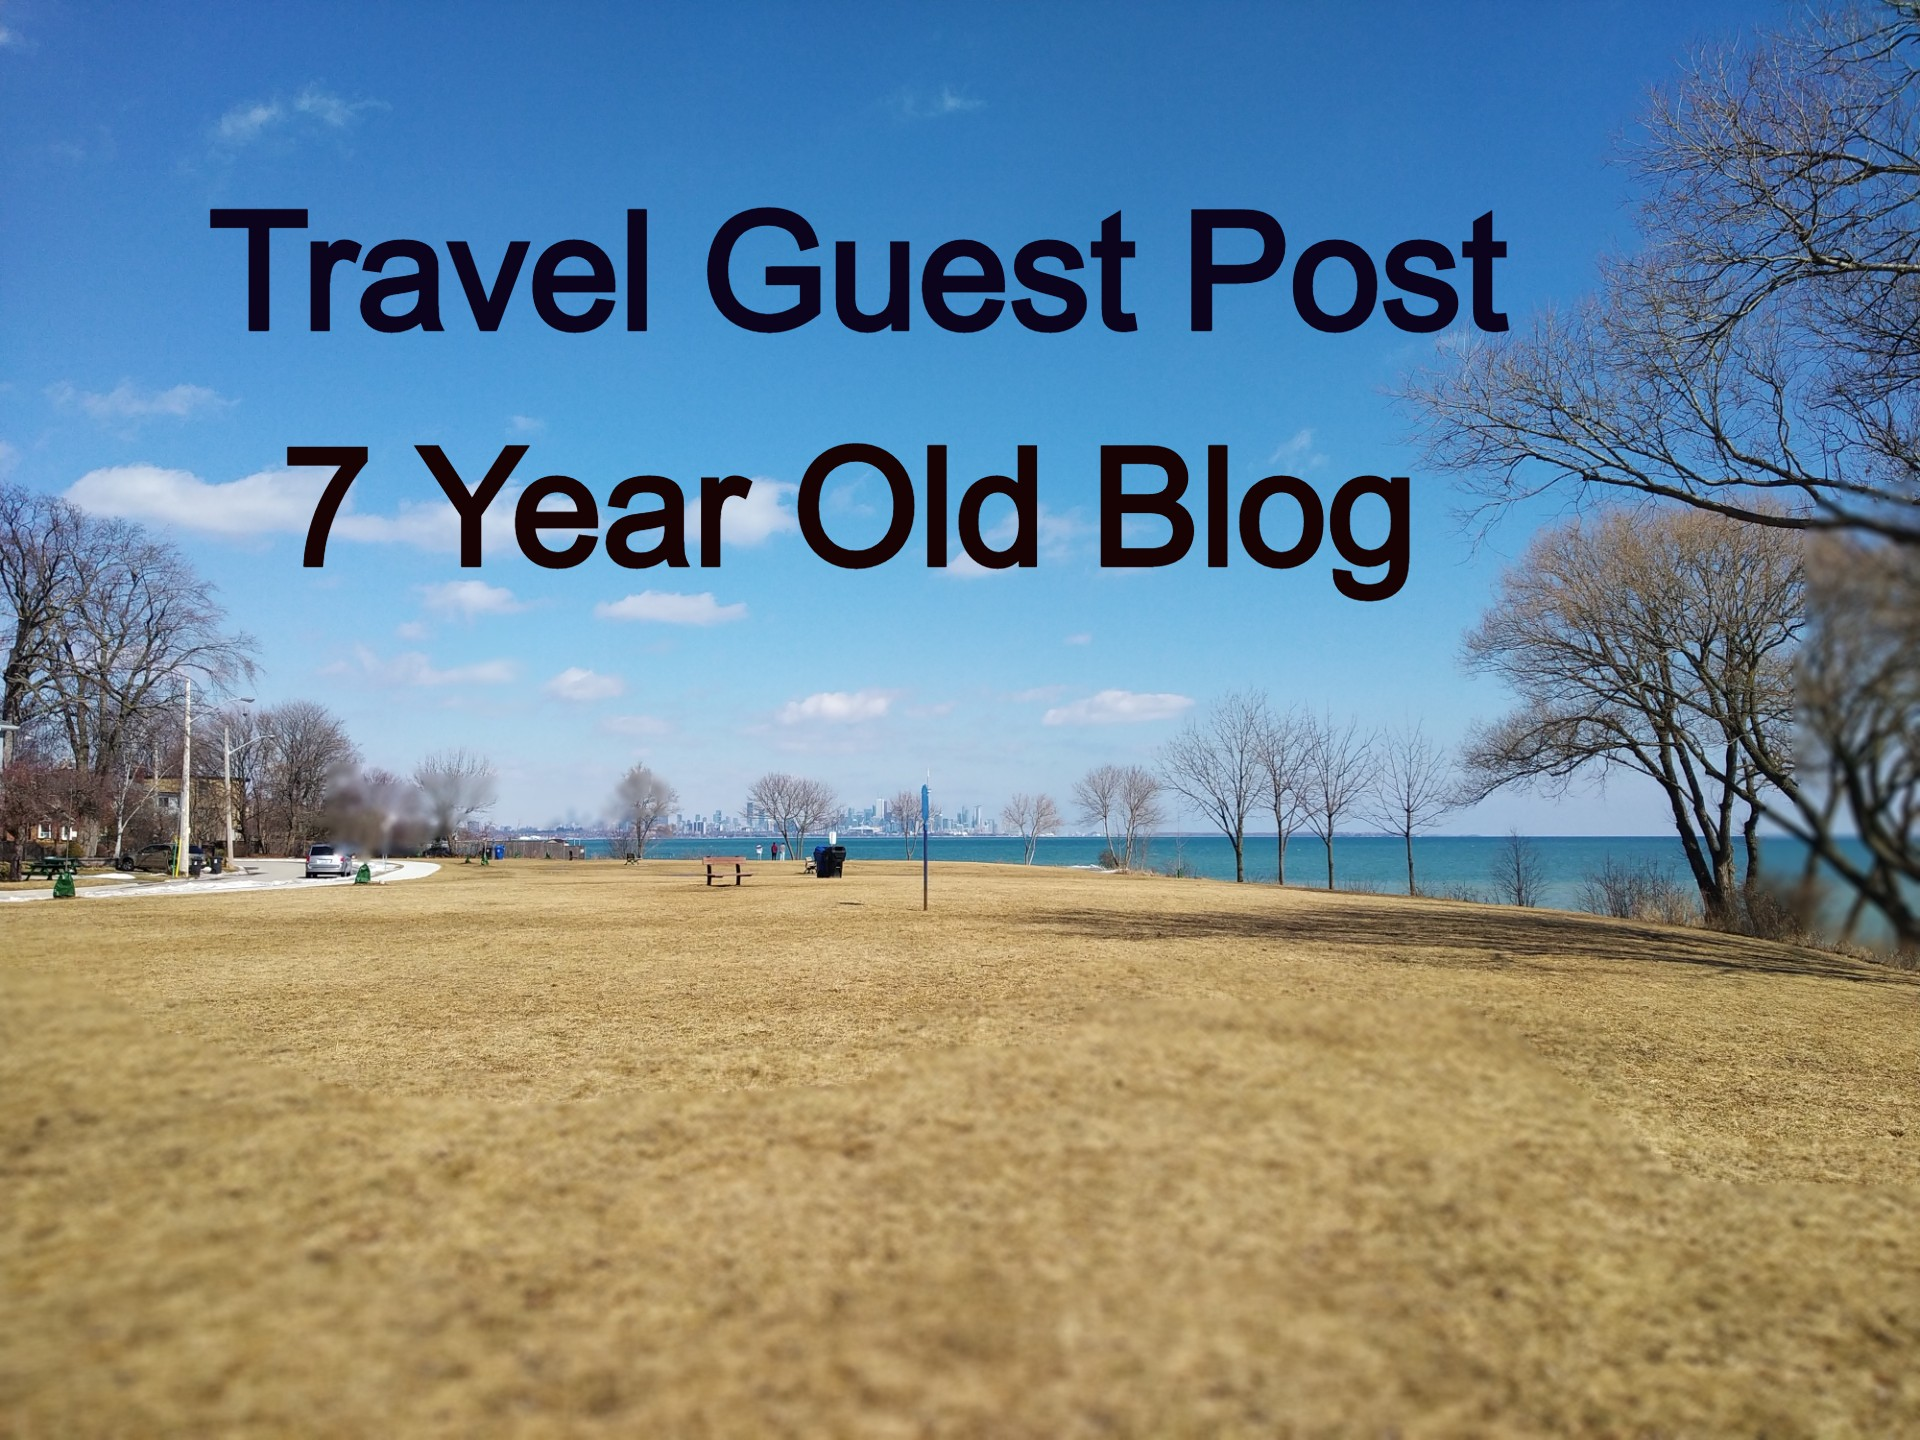 Travel Guest Post on 7 Year Old Blog with Do-Follow Backlink